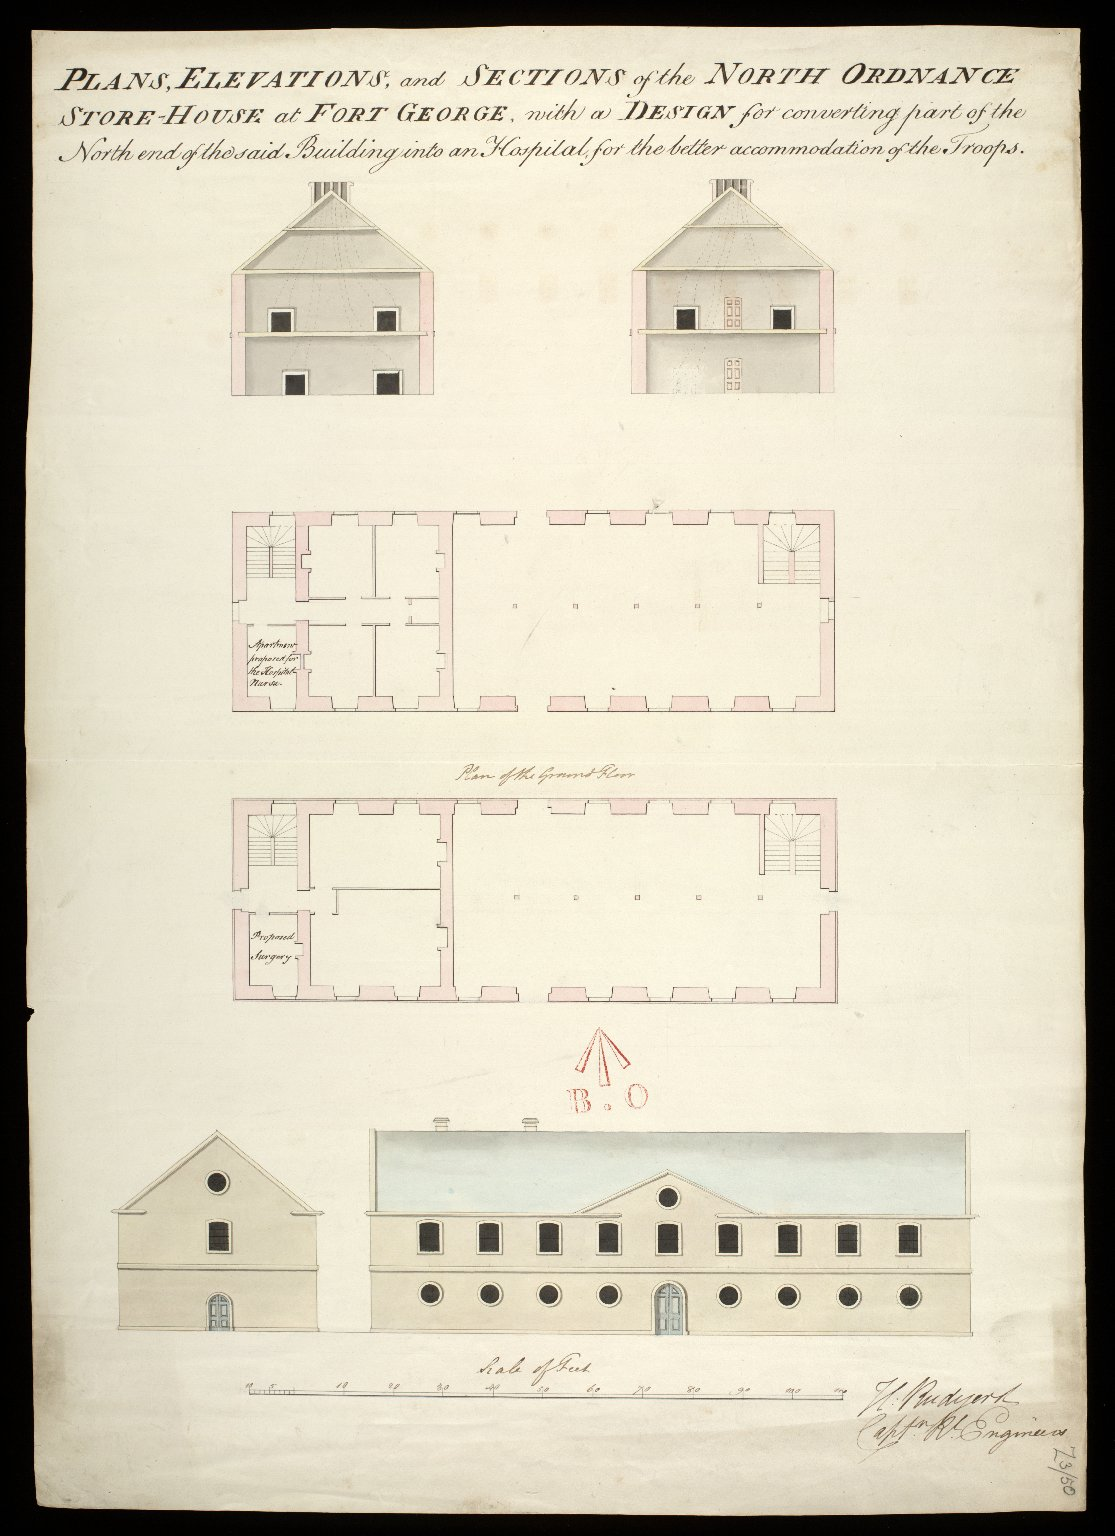 Plans, elevations, and sections of the north Ordnance Store-House at Fort George : with a design for converting part of the north end of the said building into an Hospital, for the better accomodation of the Troops [1 of 1]